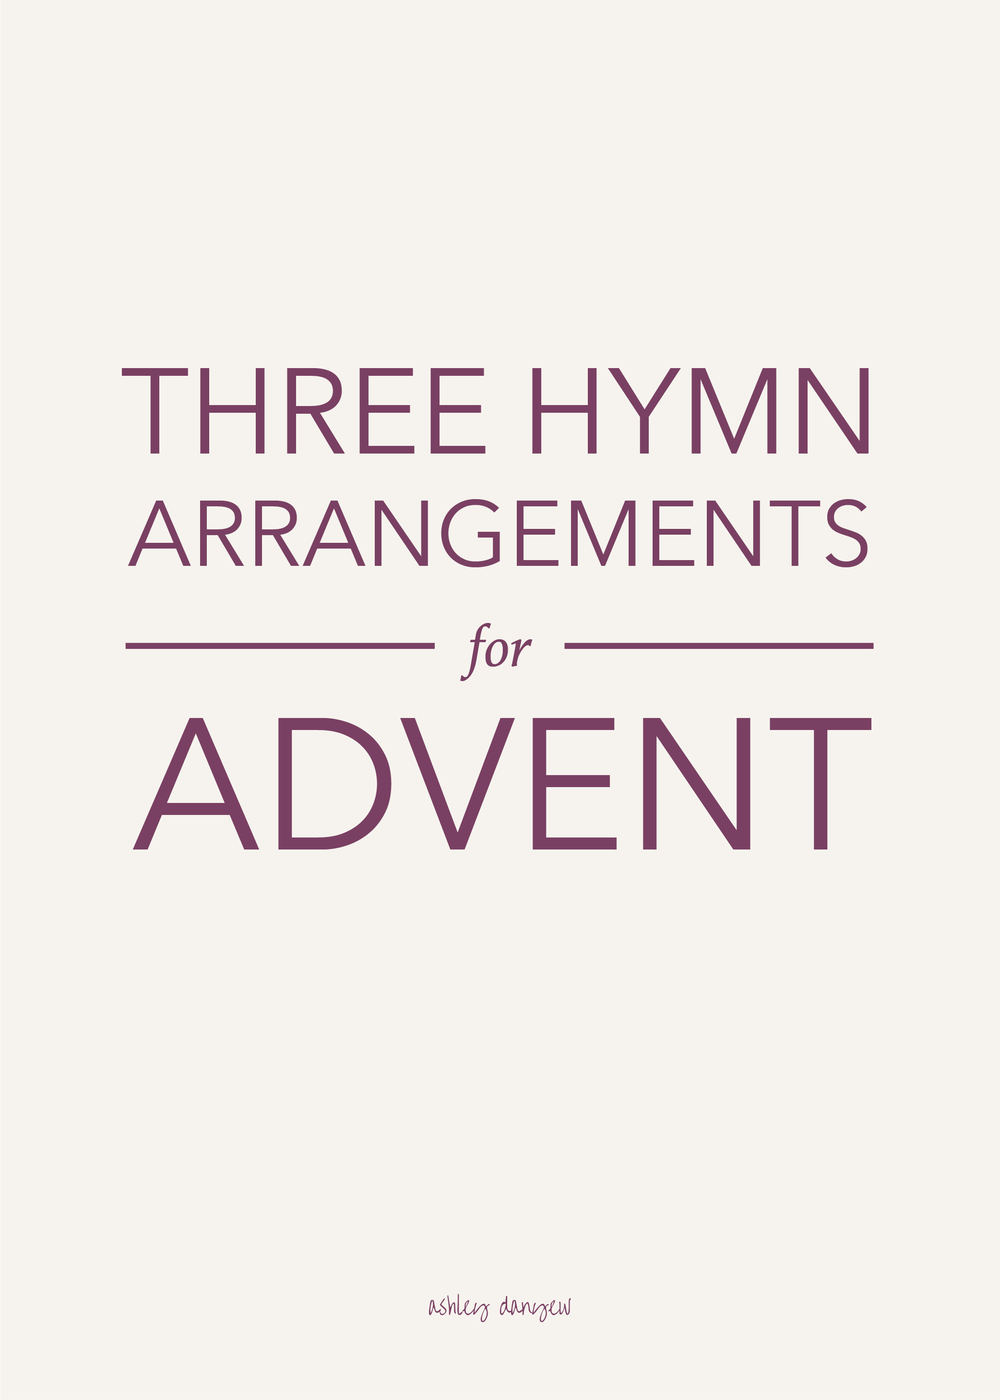 Copy of 3 Hymn Arrangements for Advent